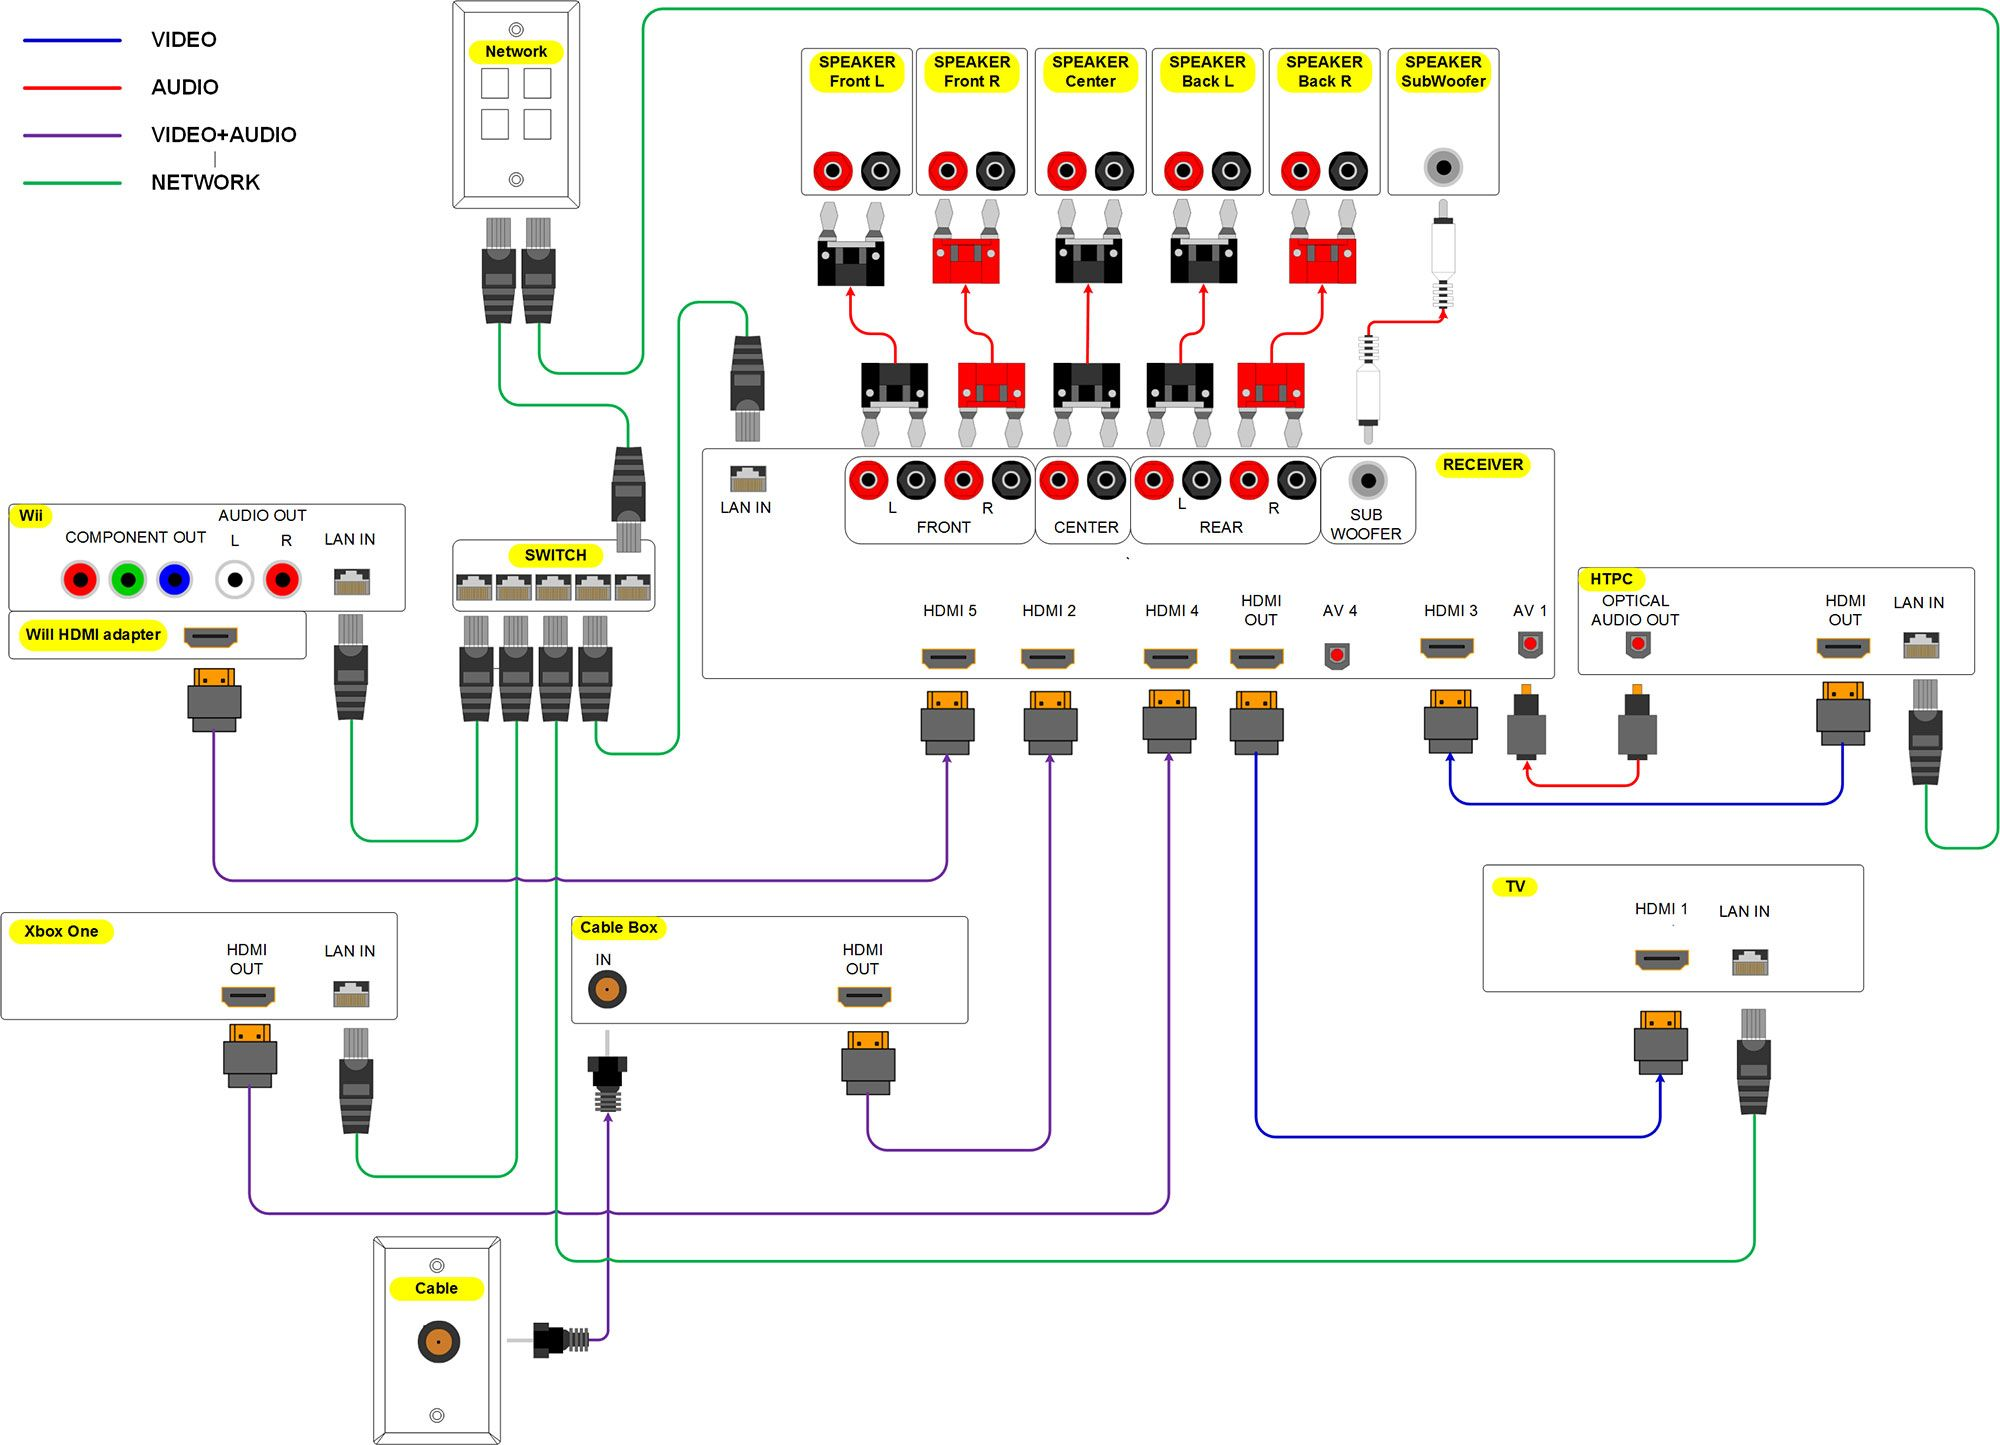 home theater wiring diagram click it to see the big 2000 pixel wide home audio wiring supplies home audio wiring [ 2000 x 1445 Pixel ]